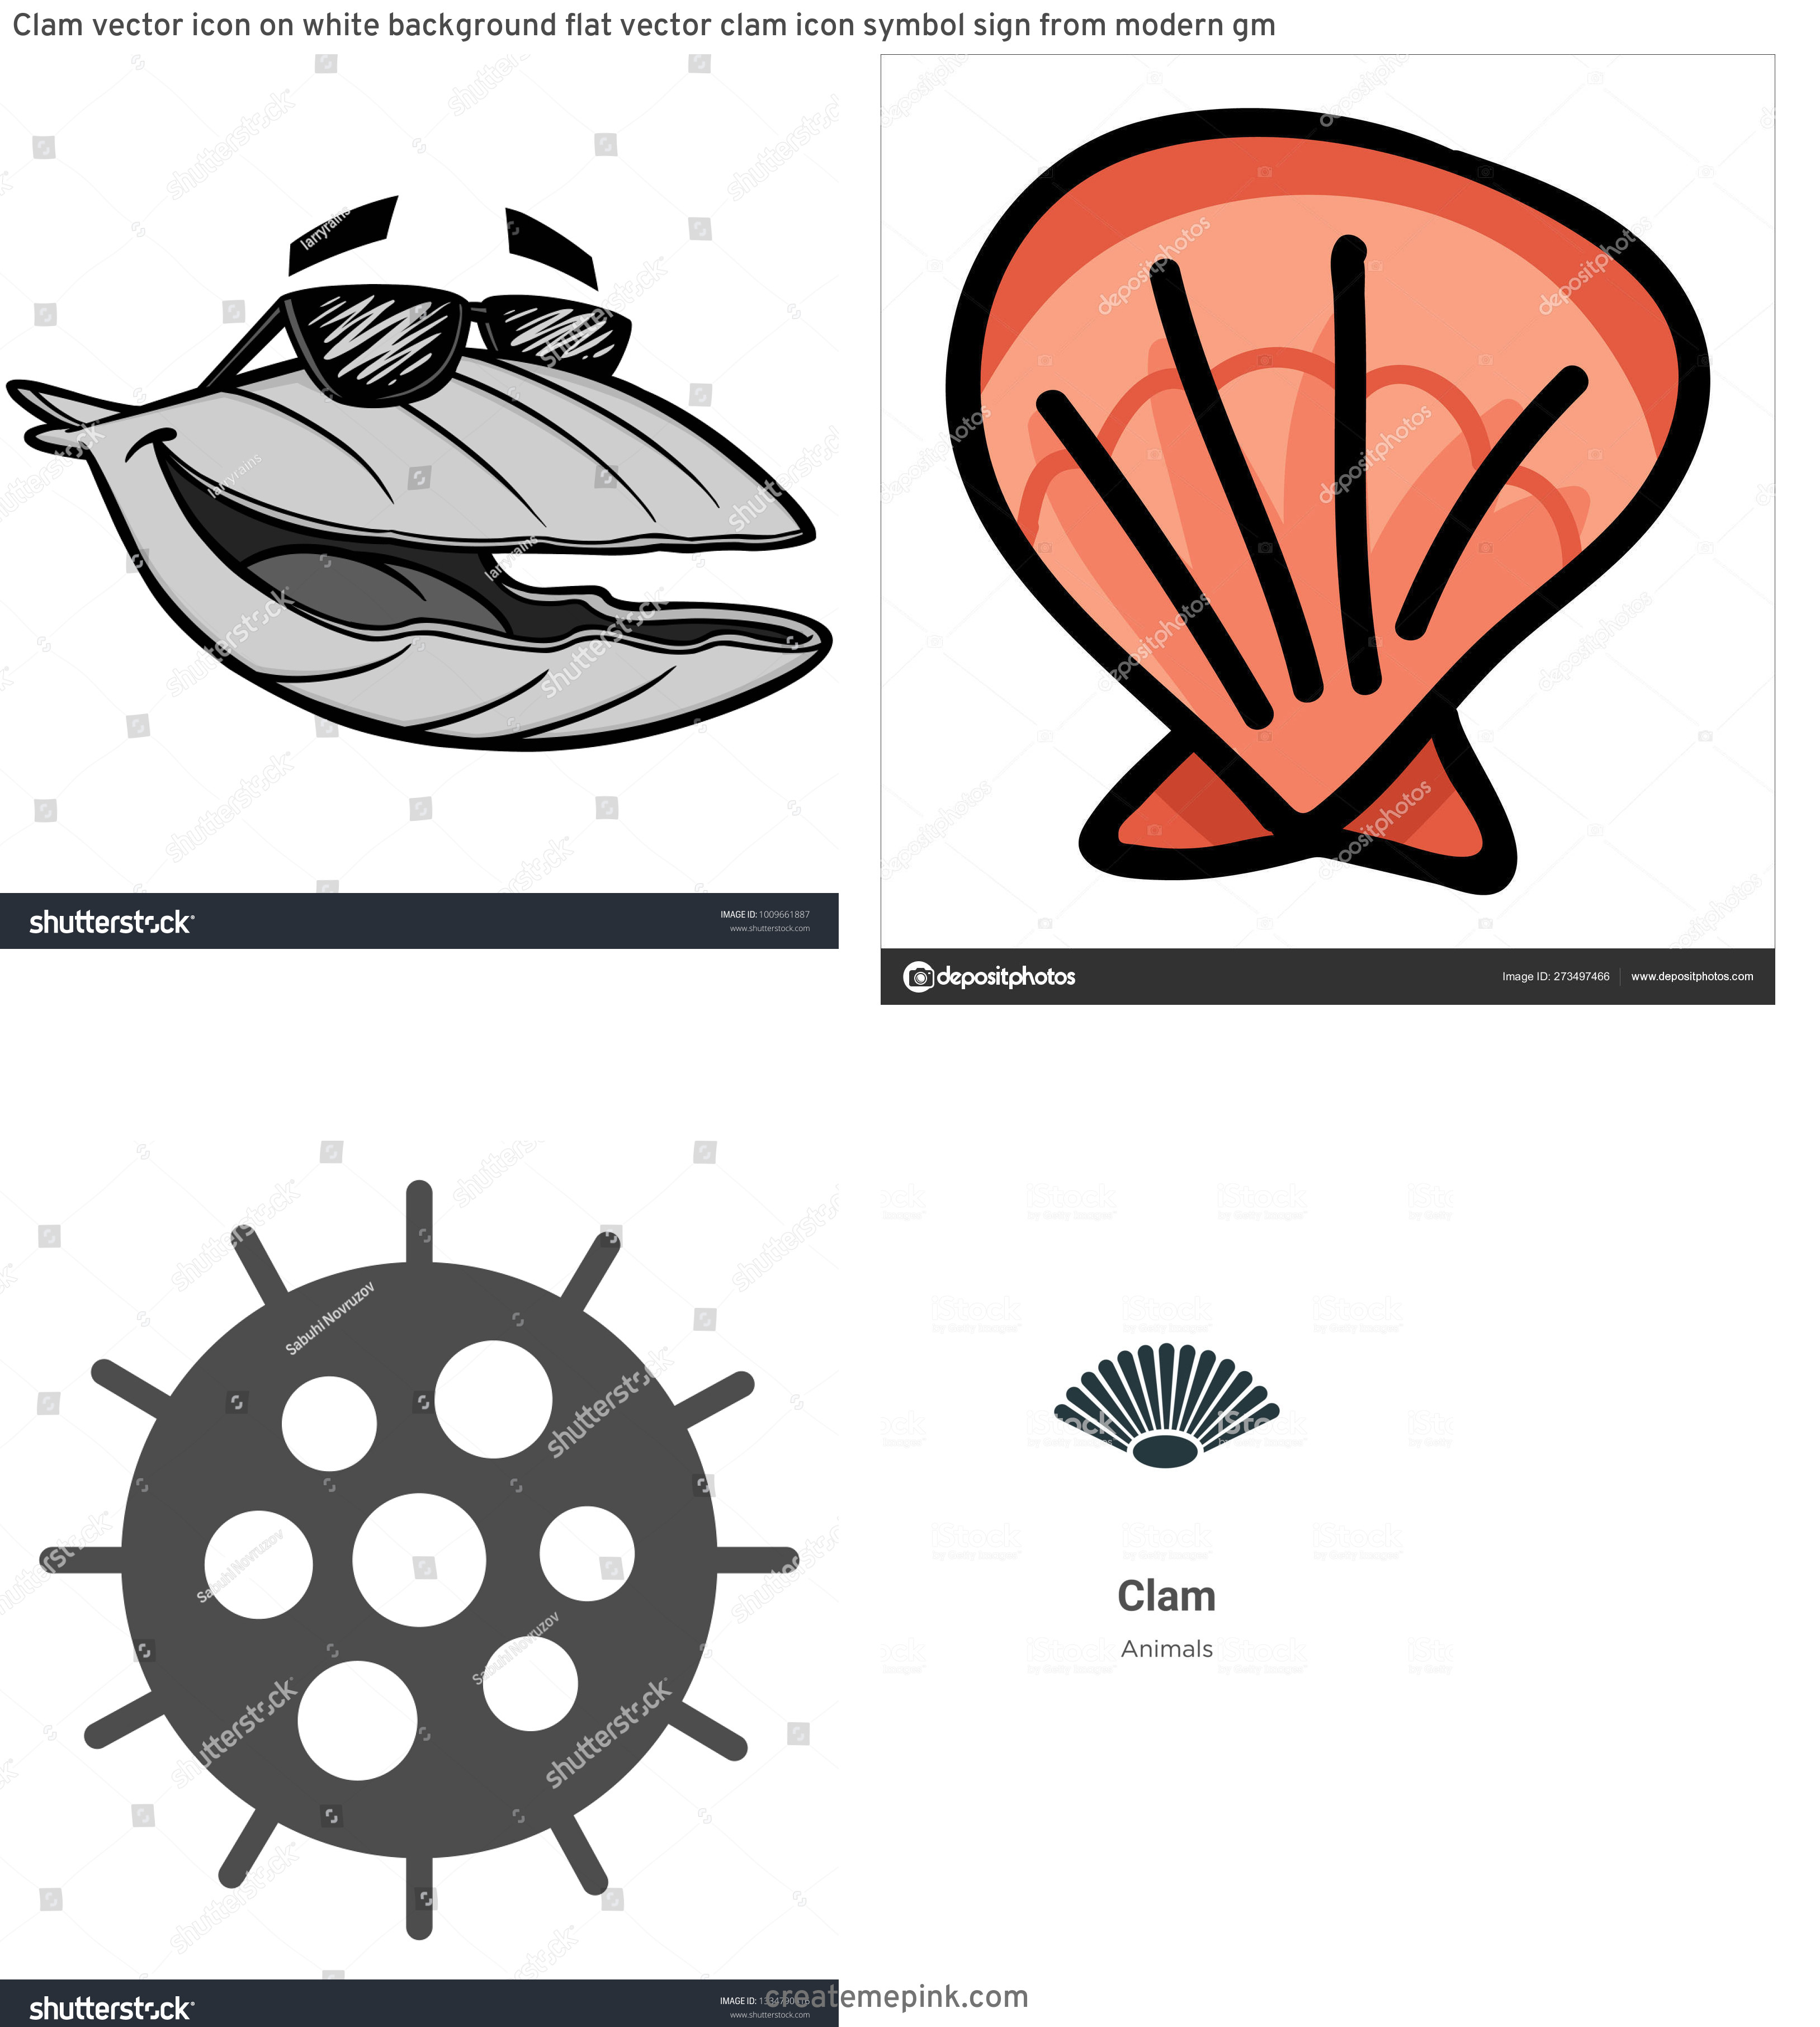 Clam Vector: Clam Vector Icon On White Background Flat Vector Clam Icon Symbol Sign From Modern Gm